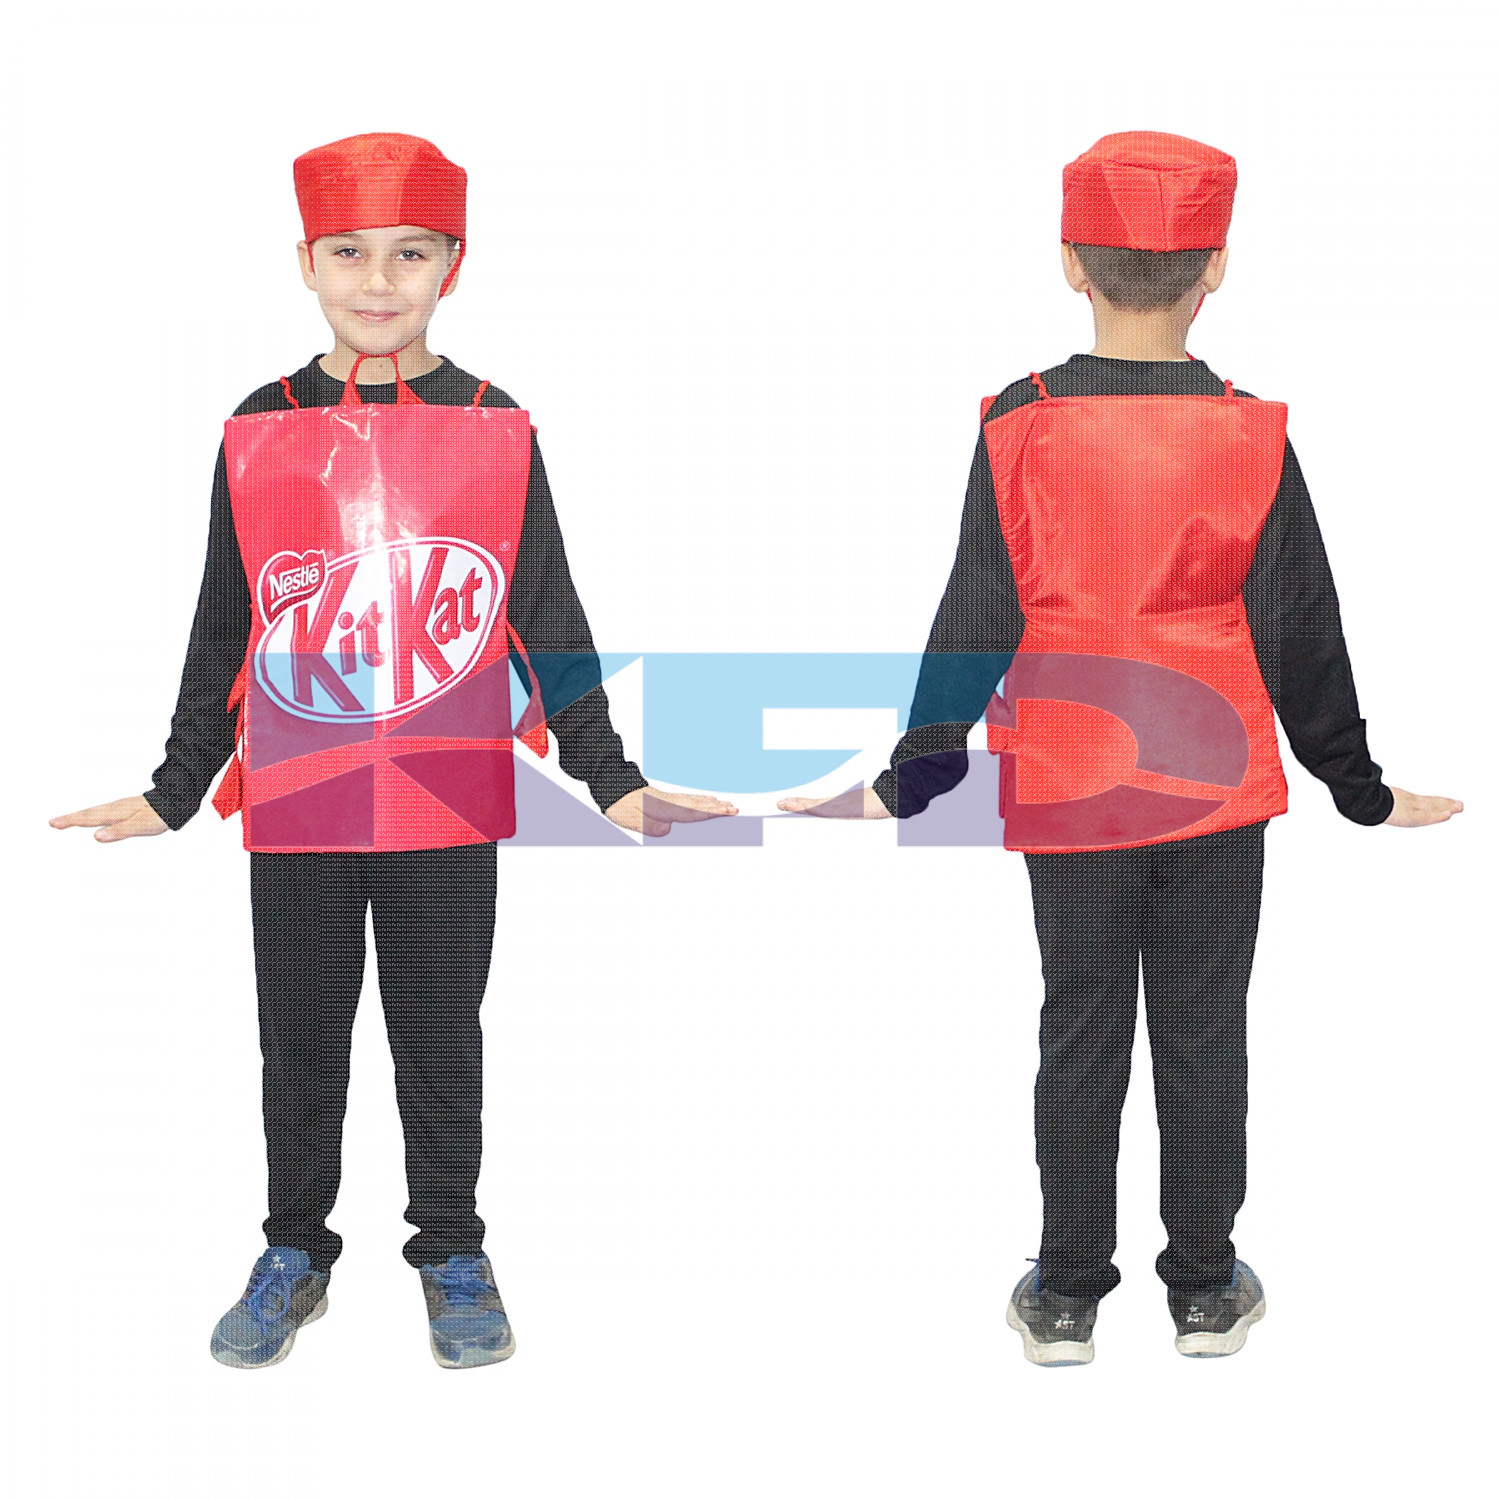 Kit kat fancy dress for kids,Object Costume for School Annual function/Theme Party/Competition/Stage Shows Dress